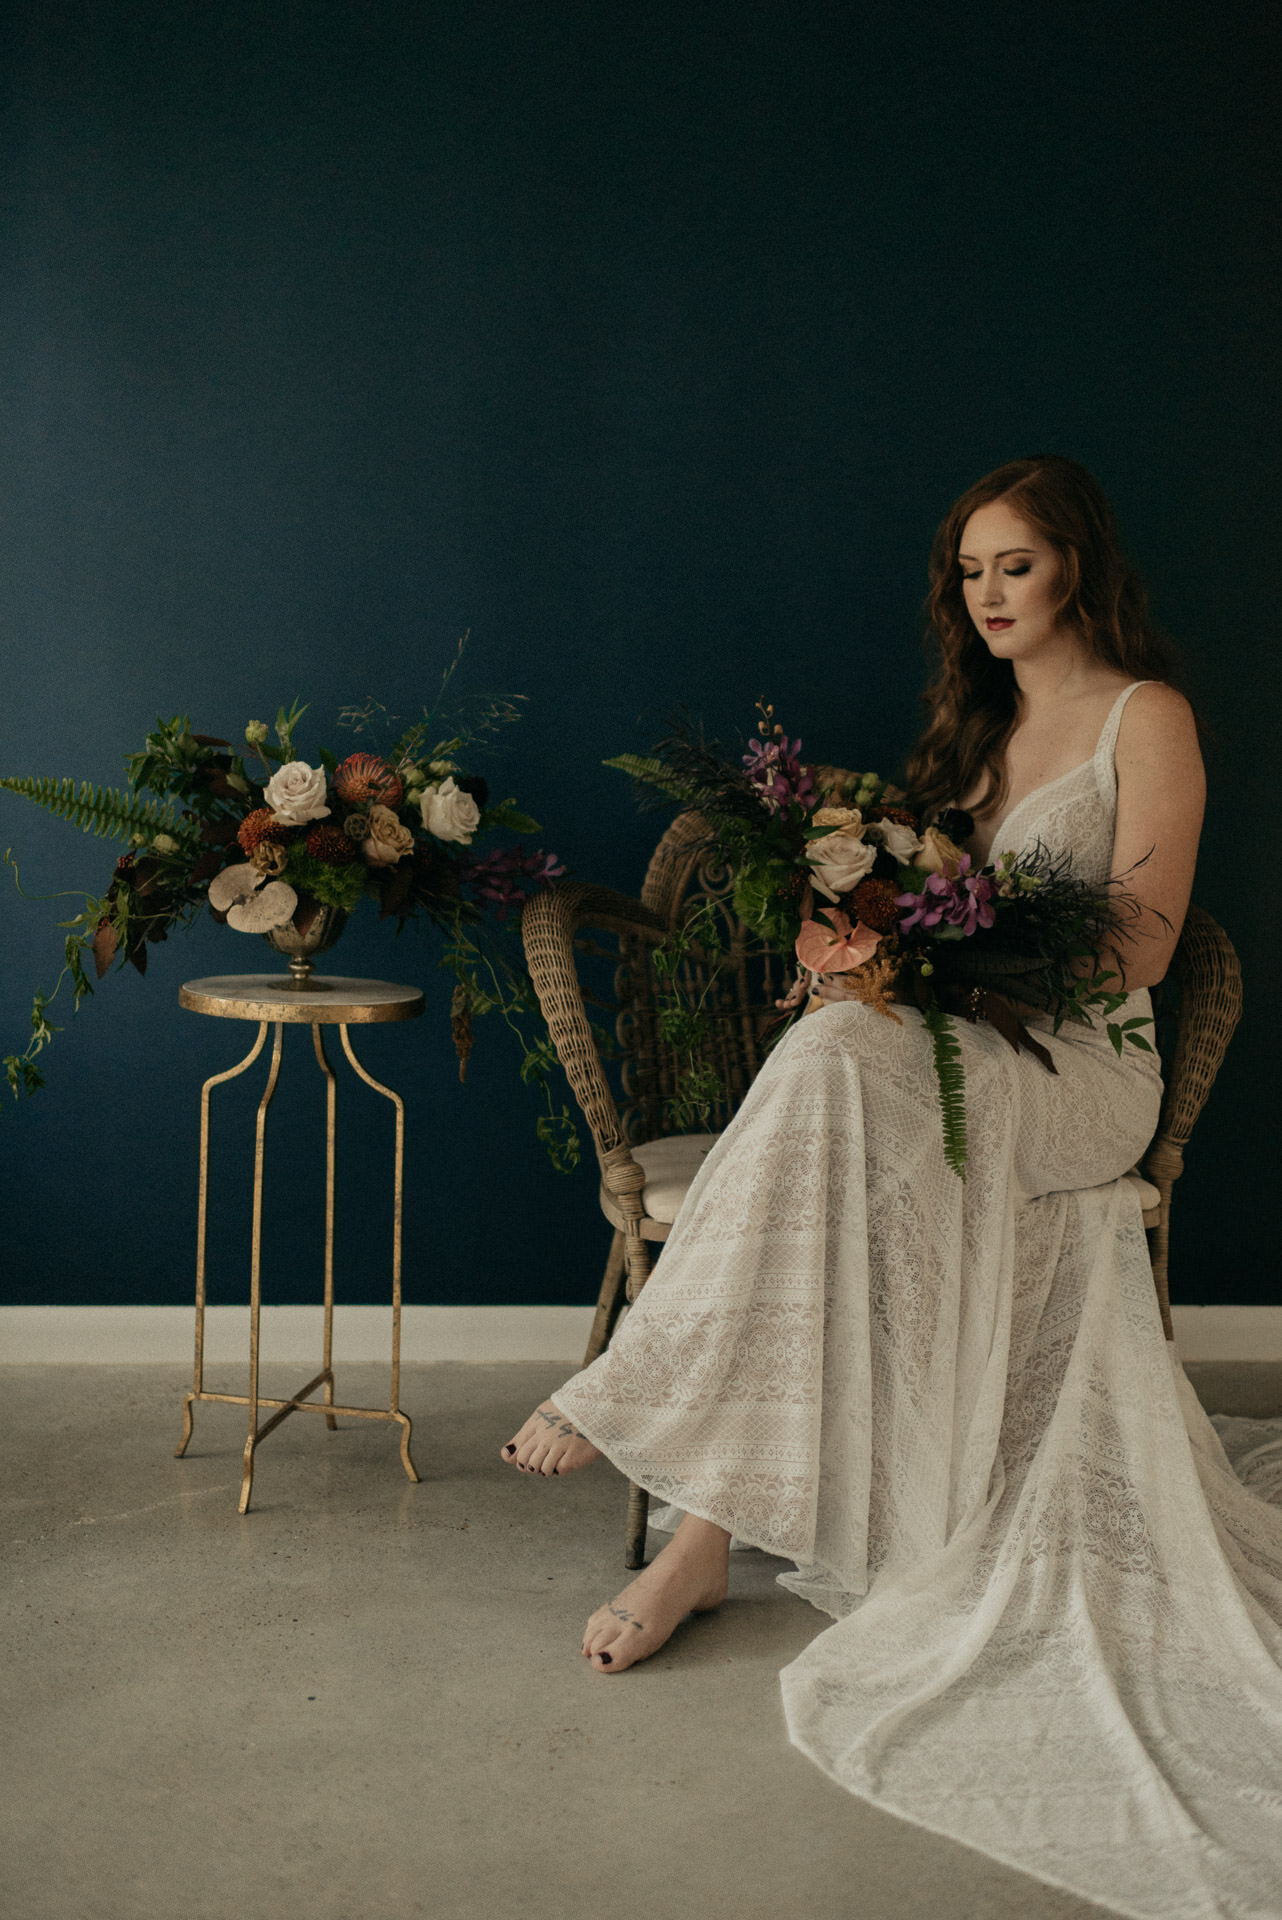 moody-fall-styled-photo-session-red-hair-woodlands-oak-atelier-whimsical-events-bridal-unbridaled-wedding-dress